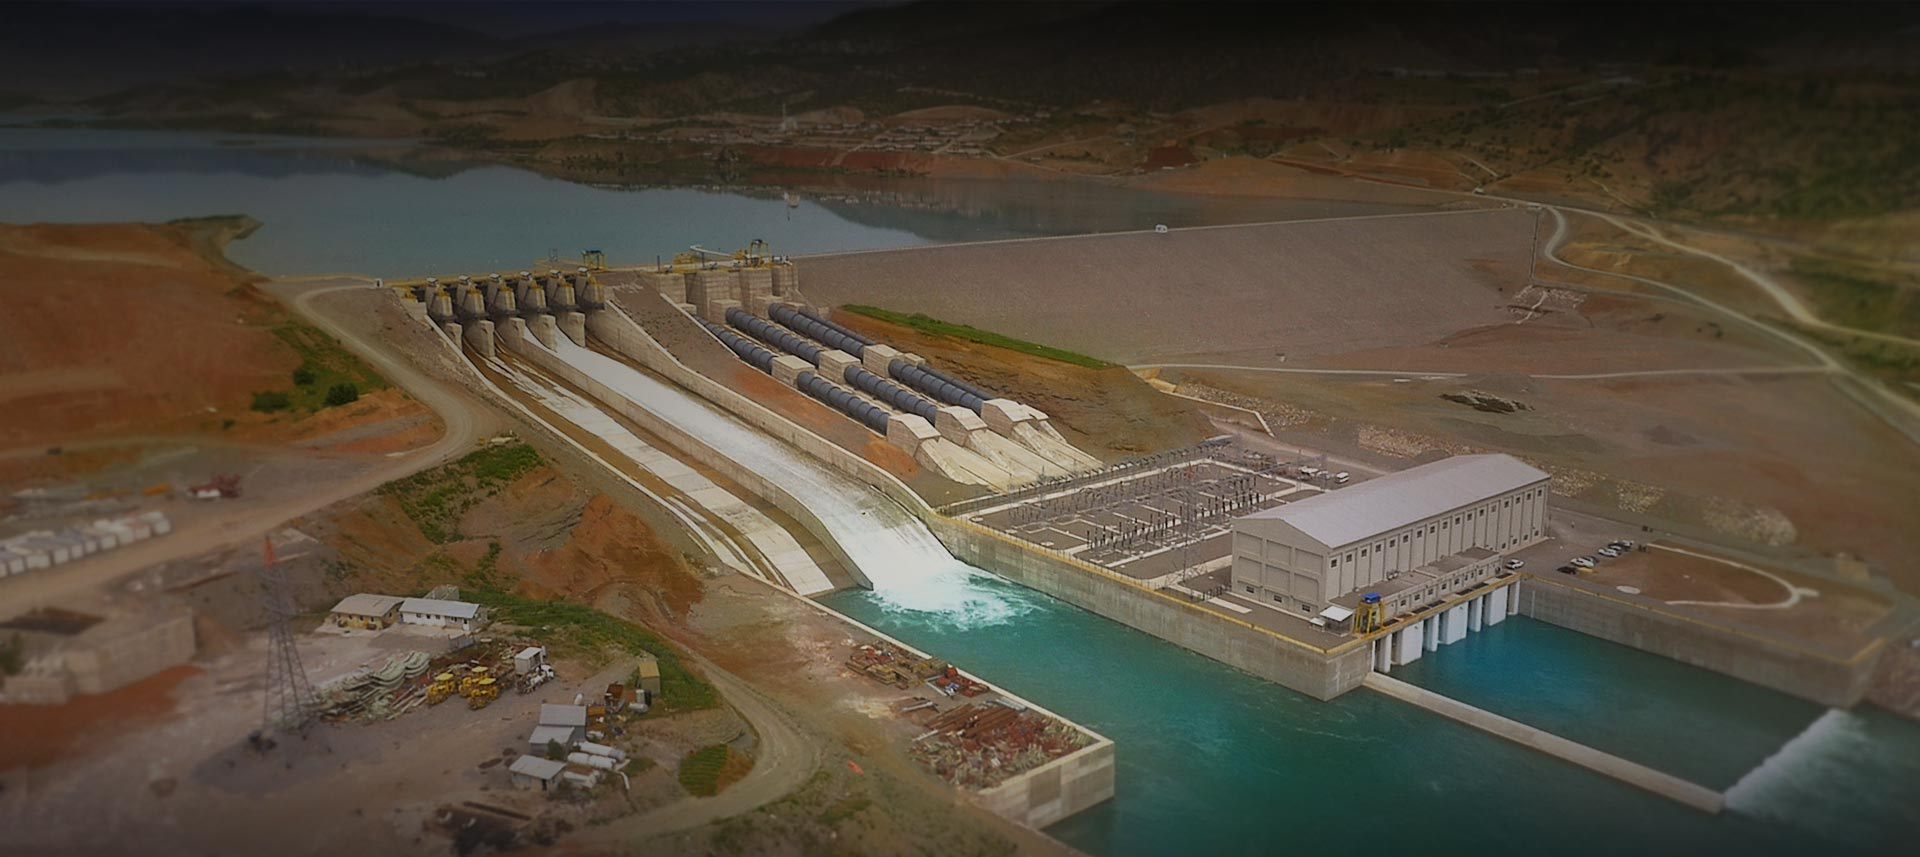 BAĞIŞTAŞ-I  BAĞIŞTAŞ-I DAM AND HEPP PROJECT